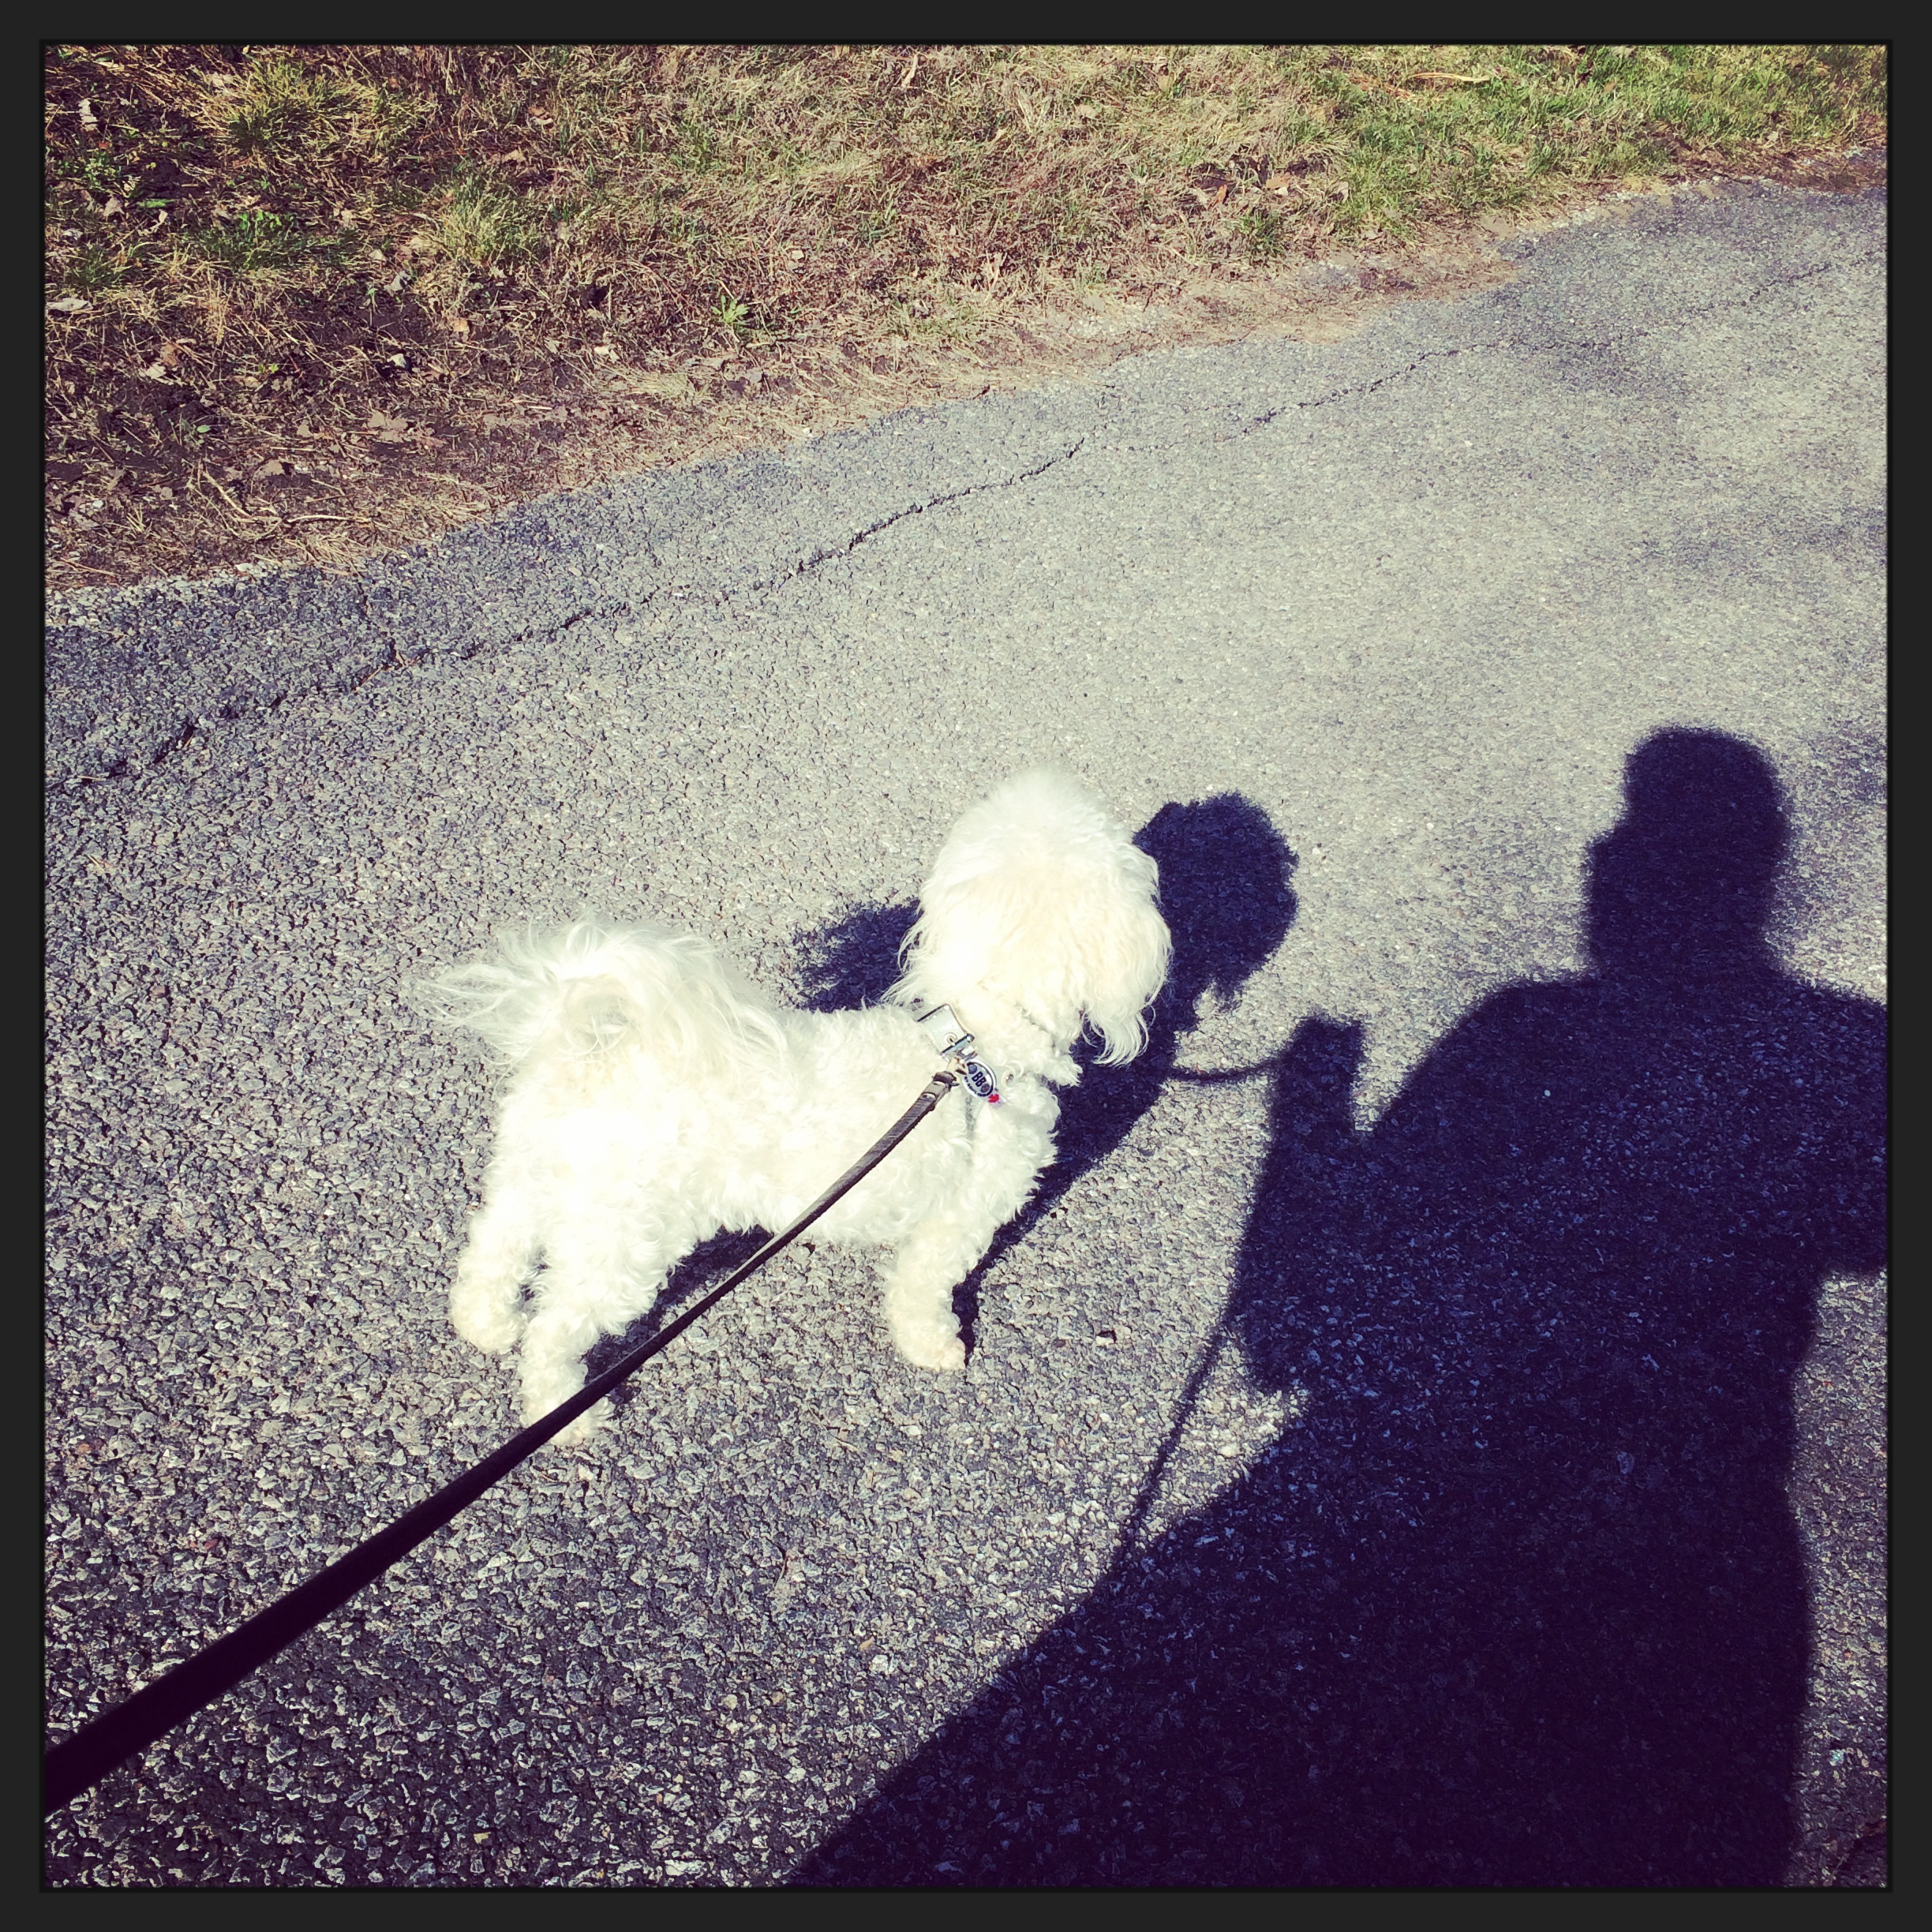 The sun finally came out on Sunday and Tosh and I enjoyed a nice walk.